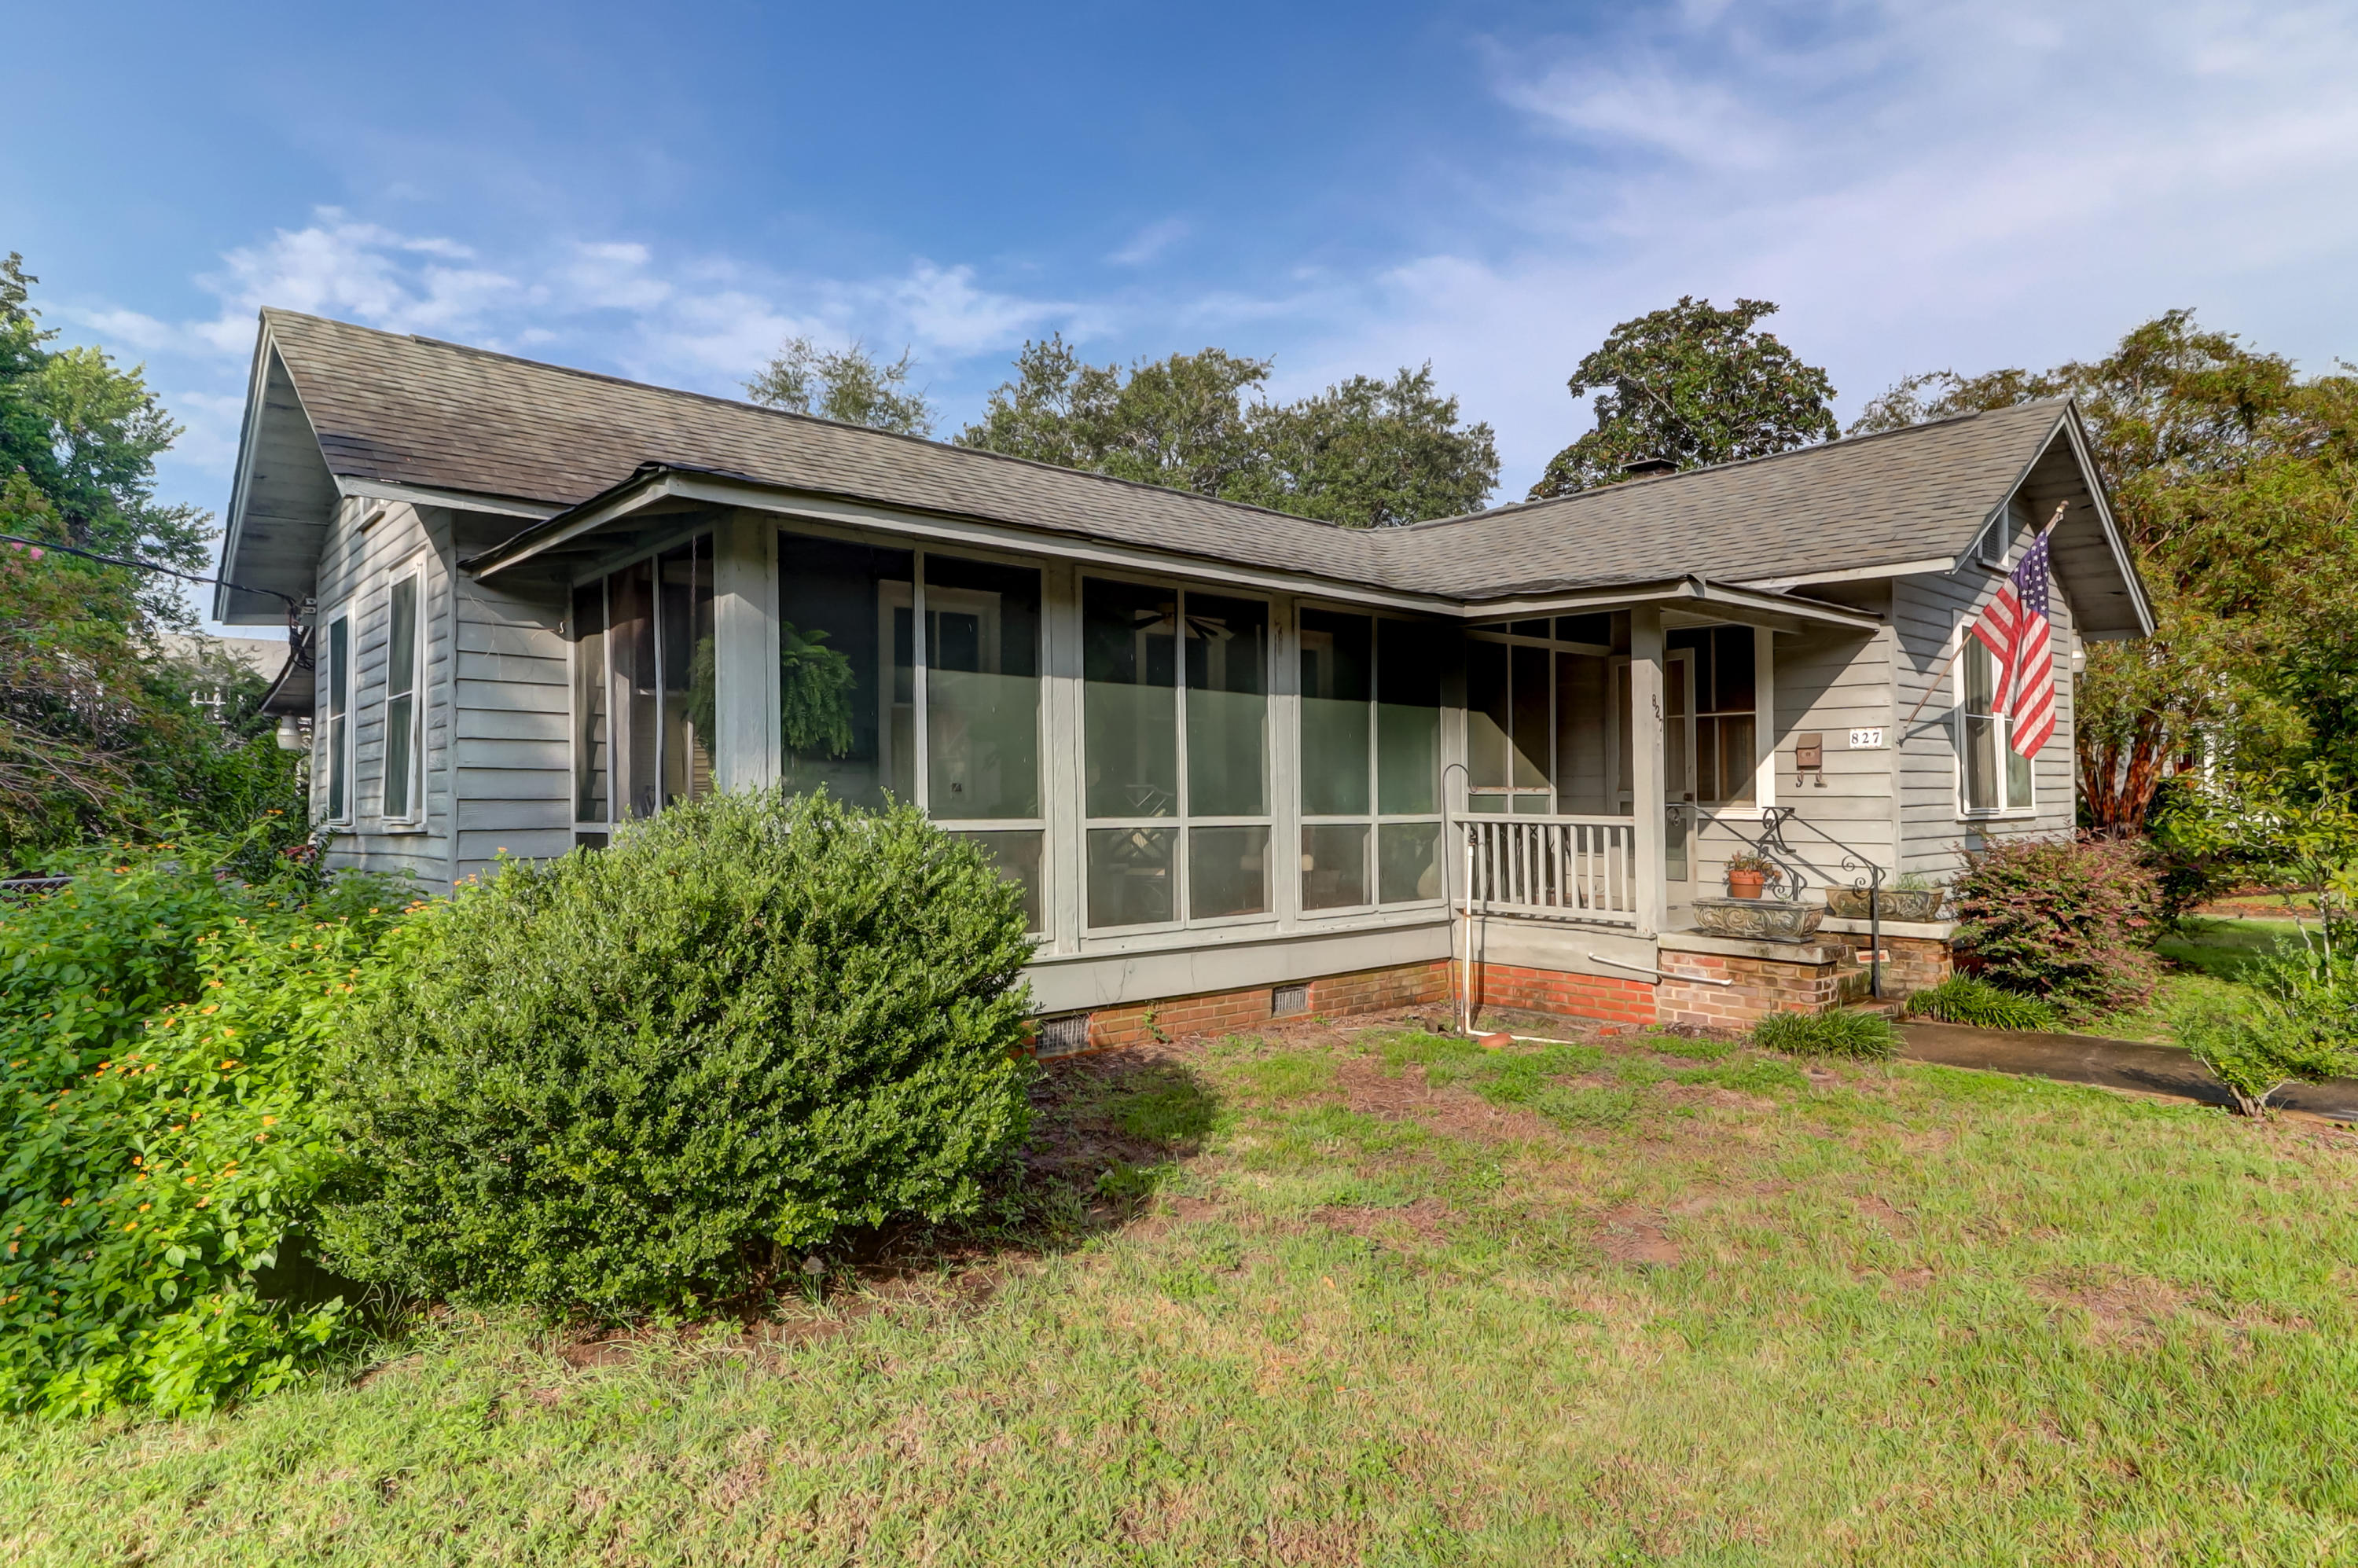 Old Village Homes For Sale - 827 Pitt, Mount Pleasant, SC - 25